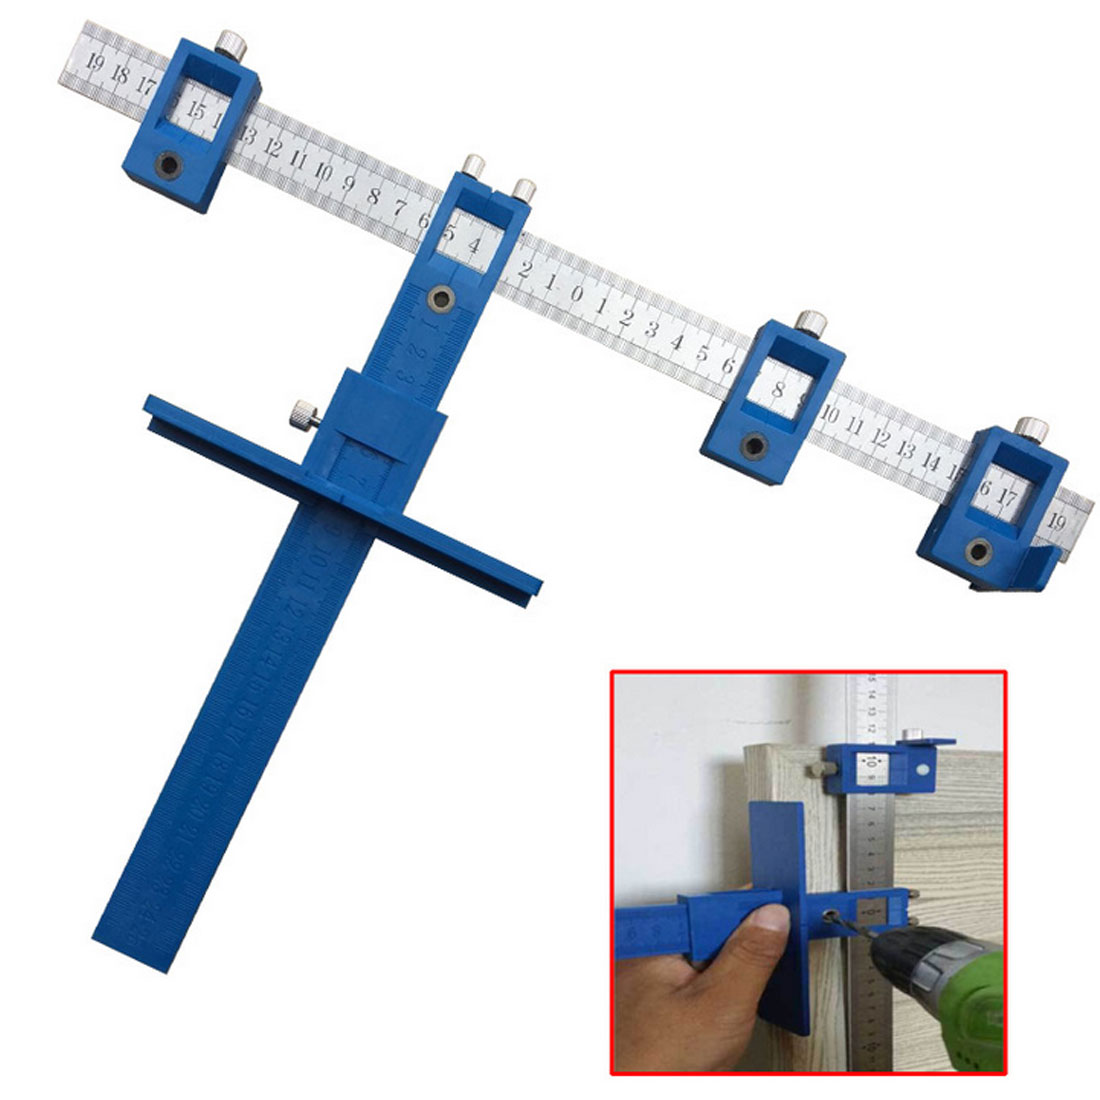 Hardware Jig Drawer Guide Sleeve Cabinet Pull Jig Wood Drilling Dowelling Hole Saw Master System Drill все цены